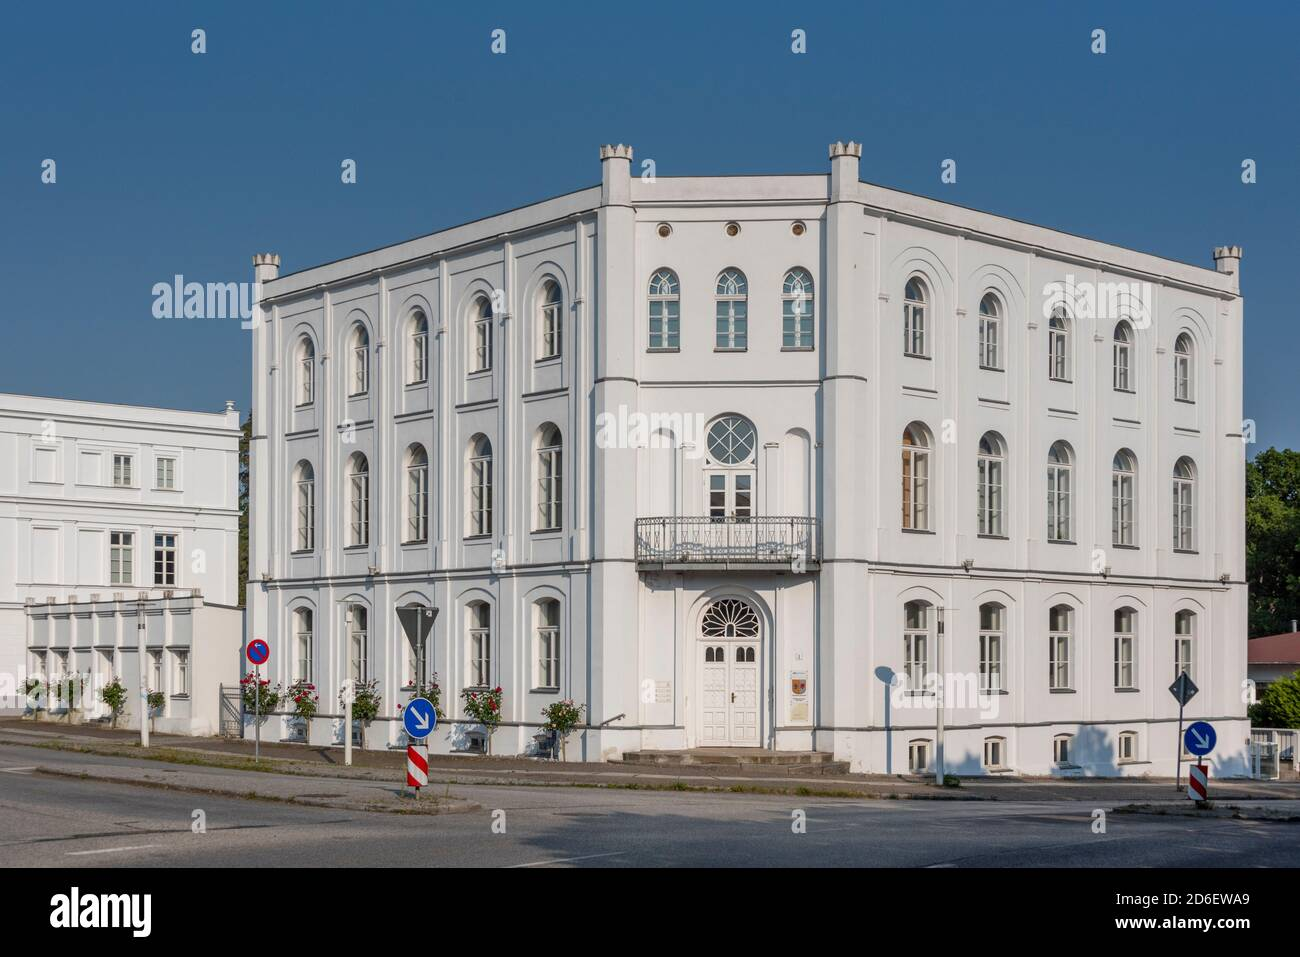 Germany, Mecklenburg-Western Pomerania, Putbus, administration building of the biosphere reserve Southeast Ruegen, stands at the Circus of the city Putbus, historical roundabout Stock Photo